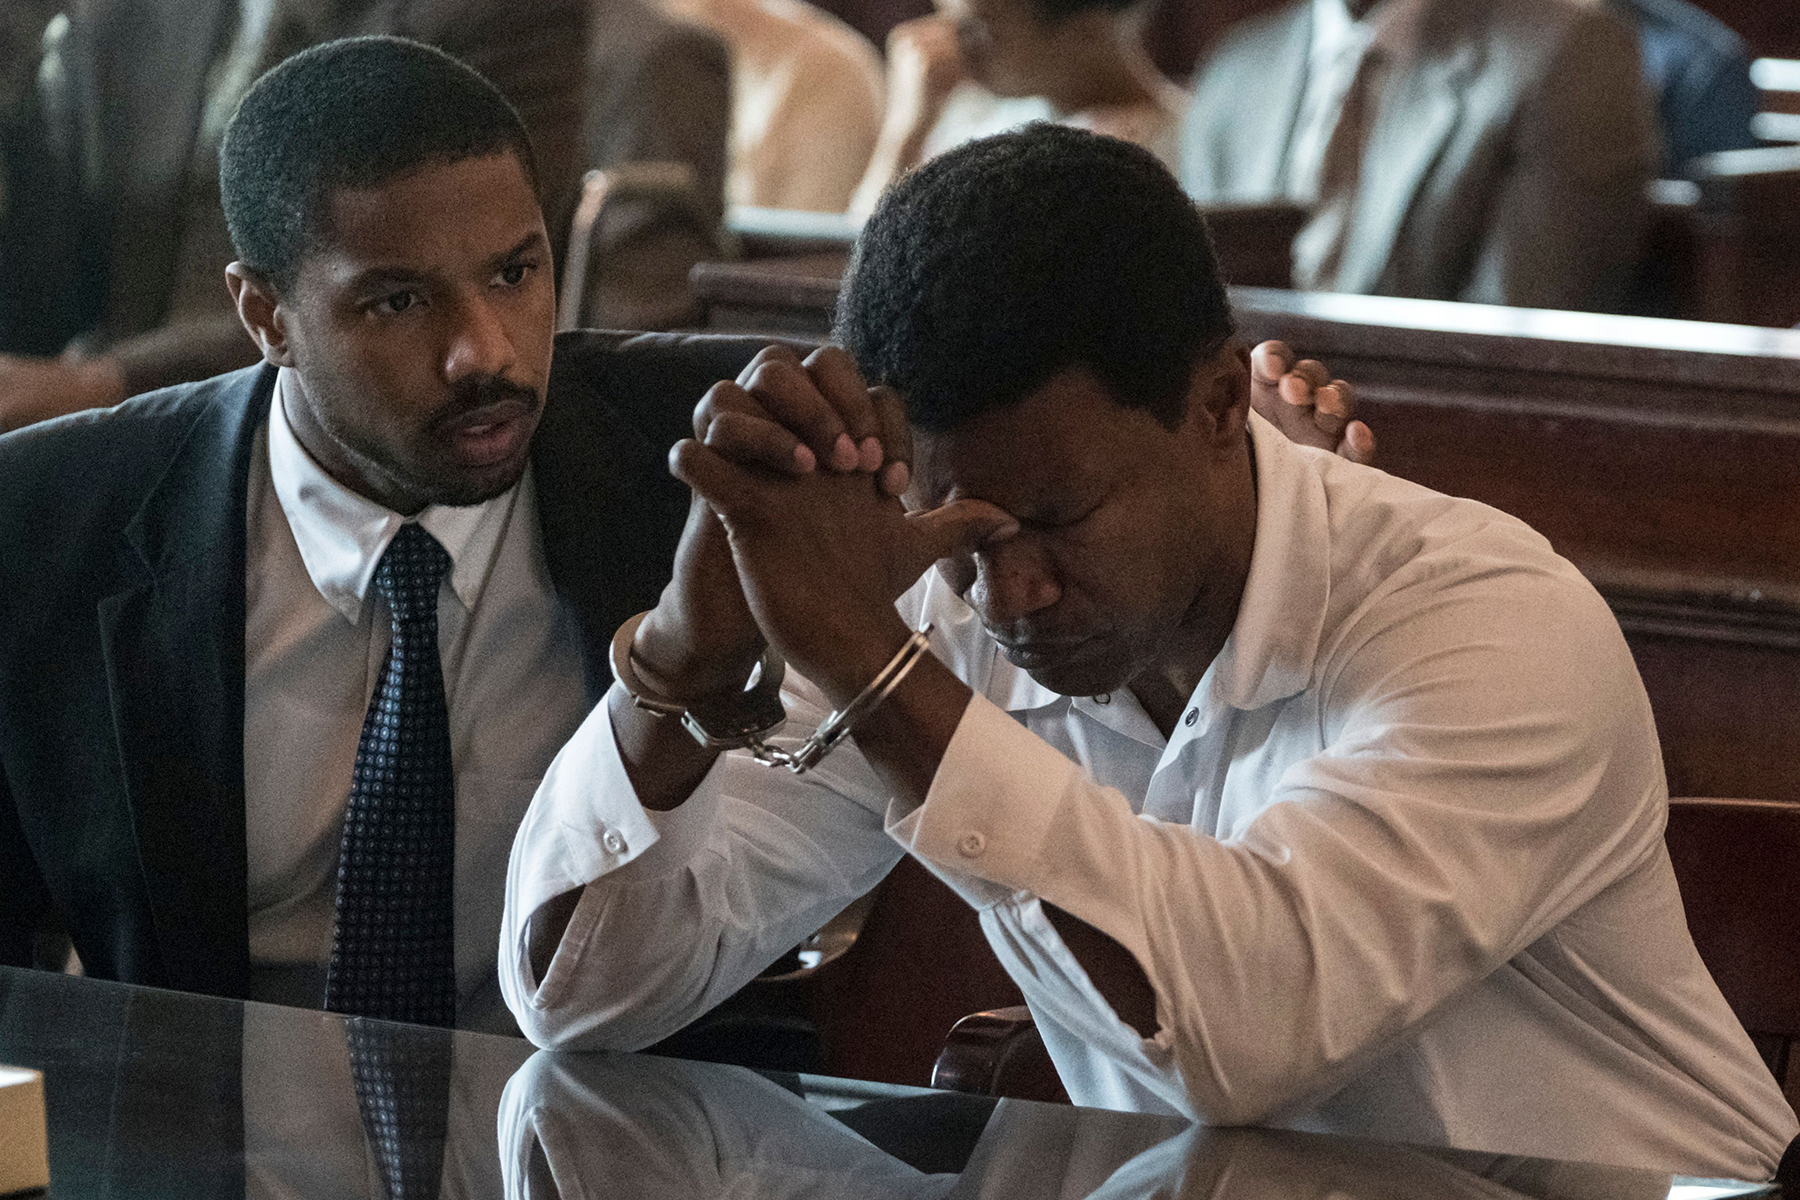 Editorial use only. No book cover usage.Mandatory Credit: Photo by Warner Bros/Kobal/Shutterstock (10510366h)Michael B. Jordan as Bryan Stevenson and Jamie Foxx as Walter McMillian'Just Mercy' Film - 2019Just Mercy shadows world-renowned civil rights defense attorney Bryan Stevenson as he recounts his experiences and details the case of a condemned death row prisoner whom he fought to free.